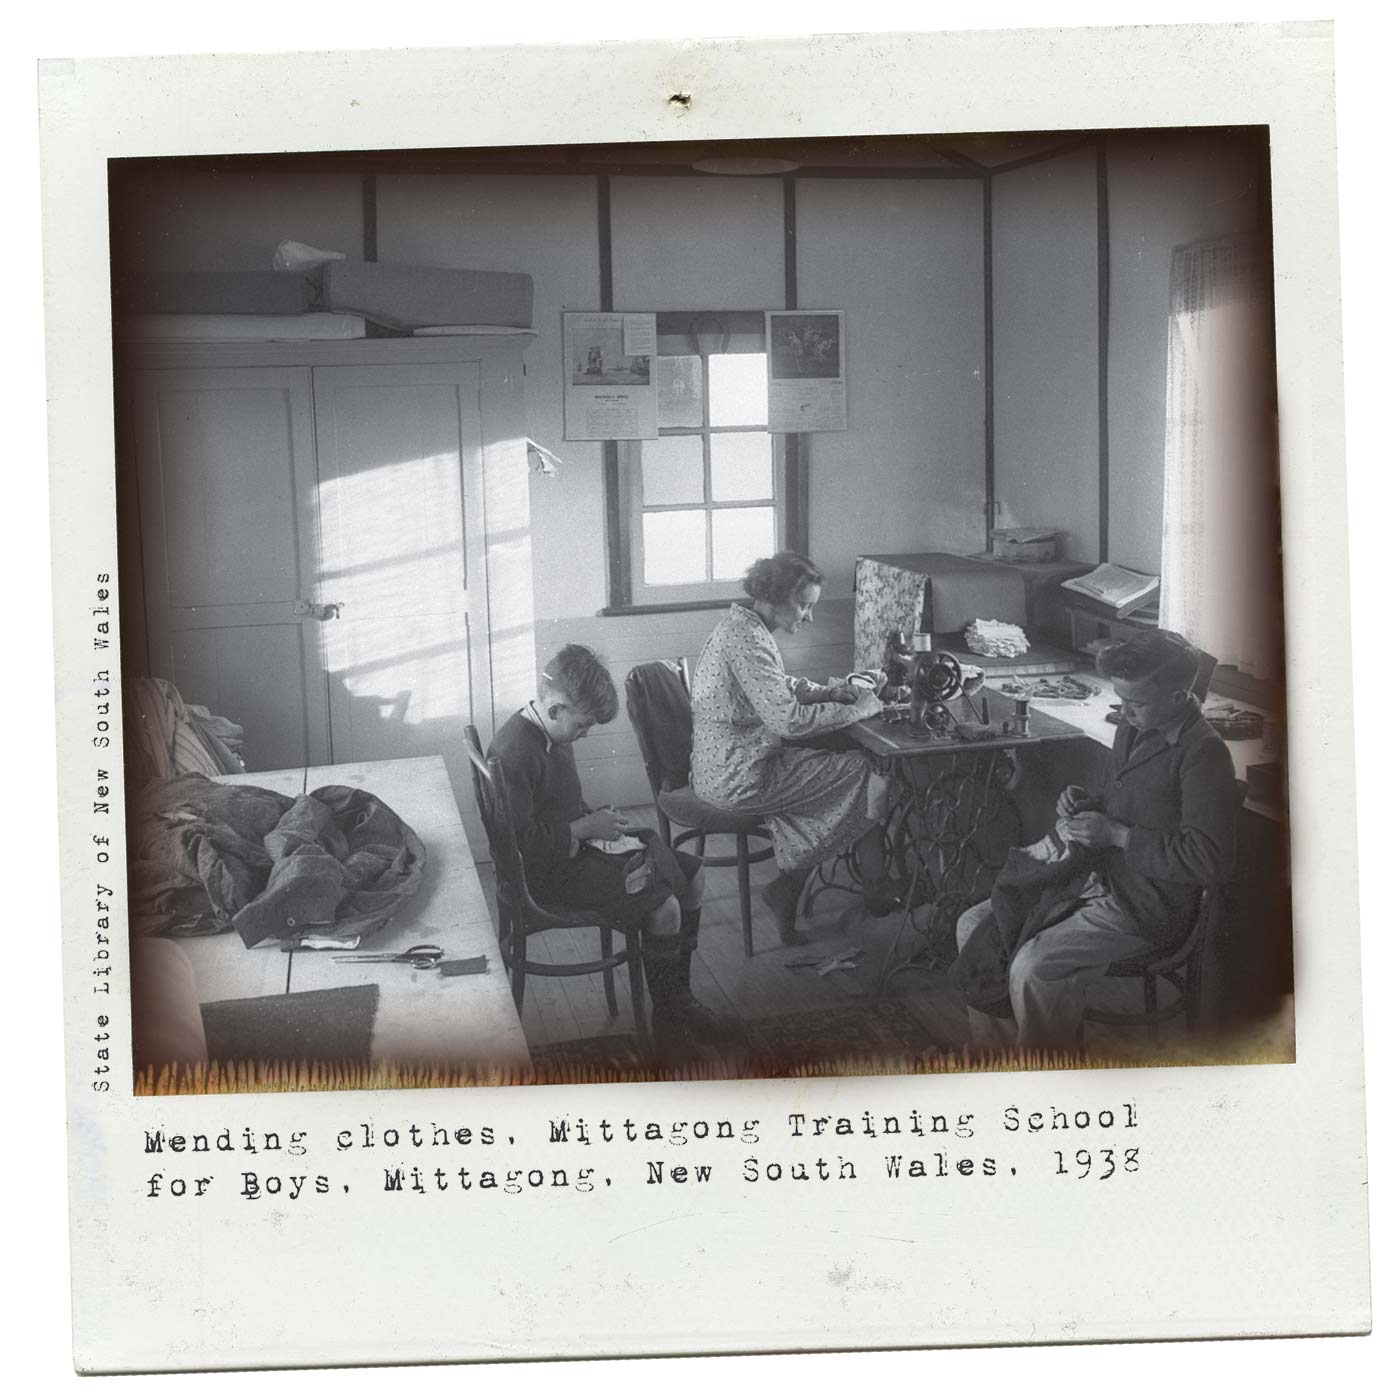 Polaroid photograph showing two boys sitting, stitching. A woman sits at a treadle sewing machine and several garments and a pair of scissors are on a table in the foreground. Typewritten text below reads 'Mending clothes, Mittagong Training School for Boys, Mittagong, New South Wales, 1938'. 'State Library of New South Wales' is typed along the left side. - click to view larger image